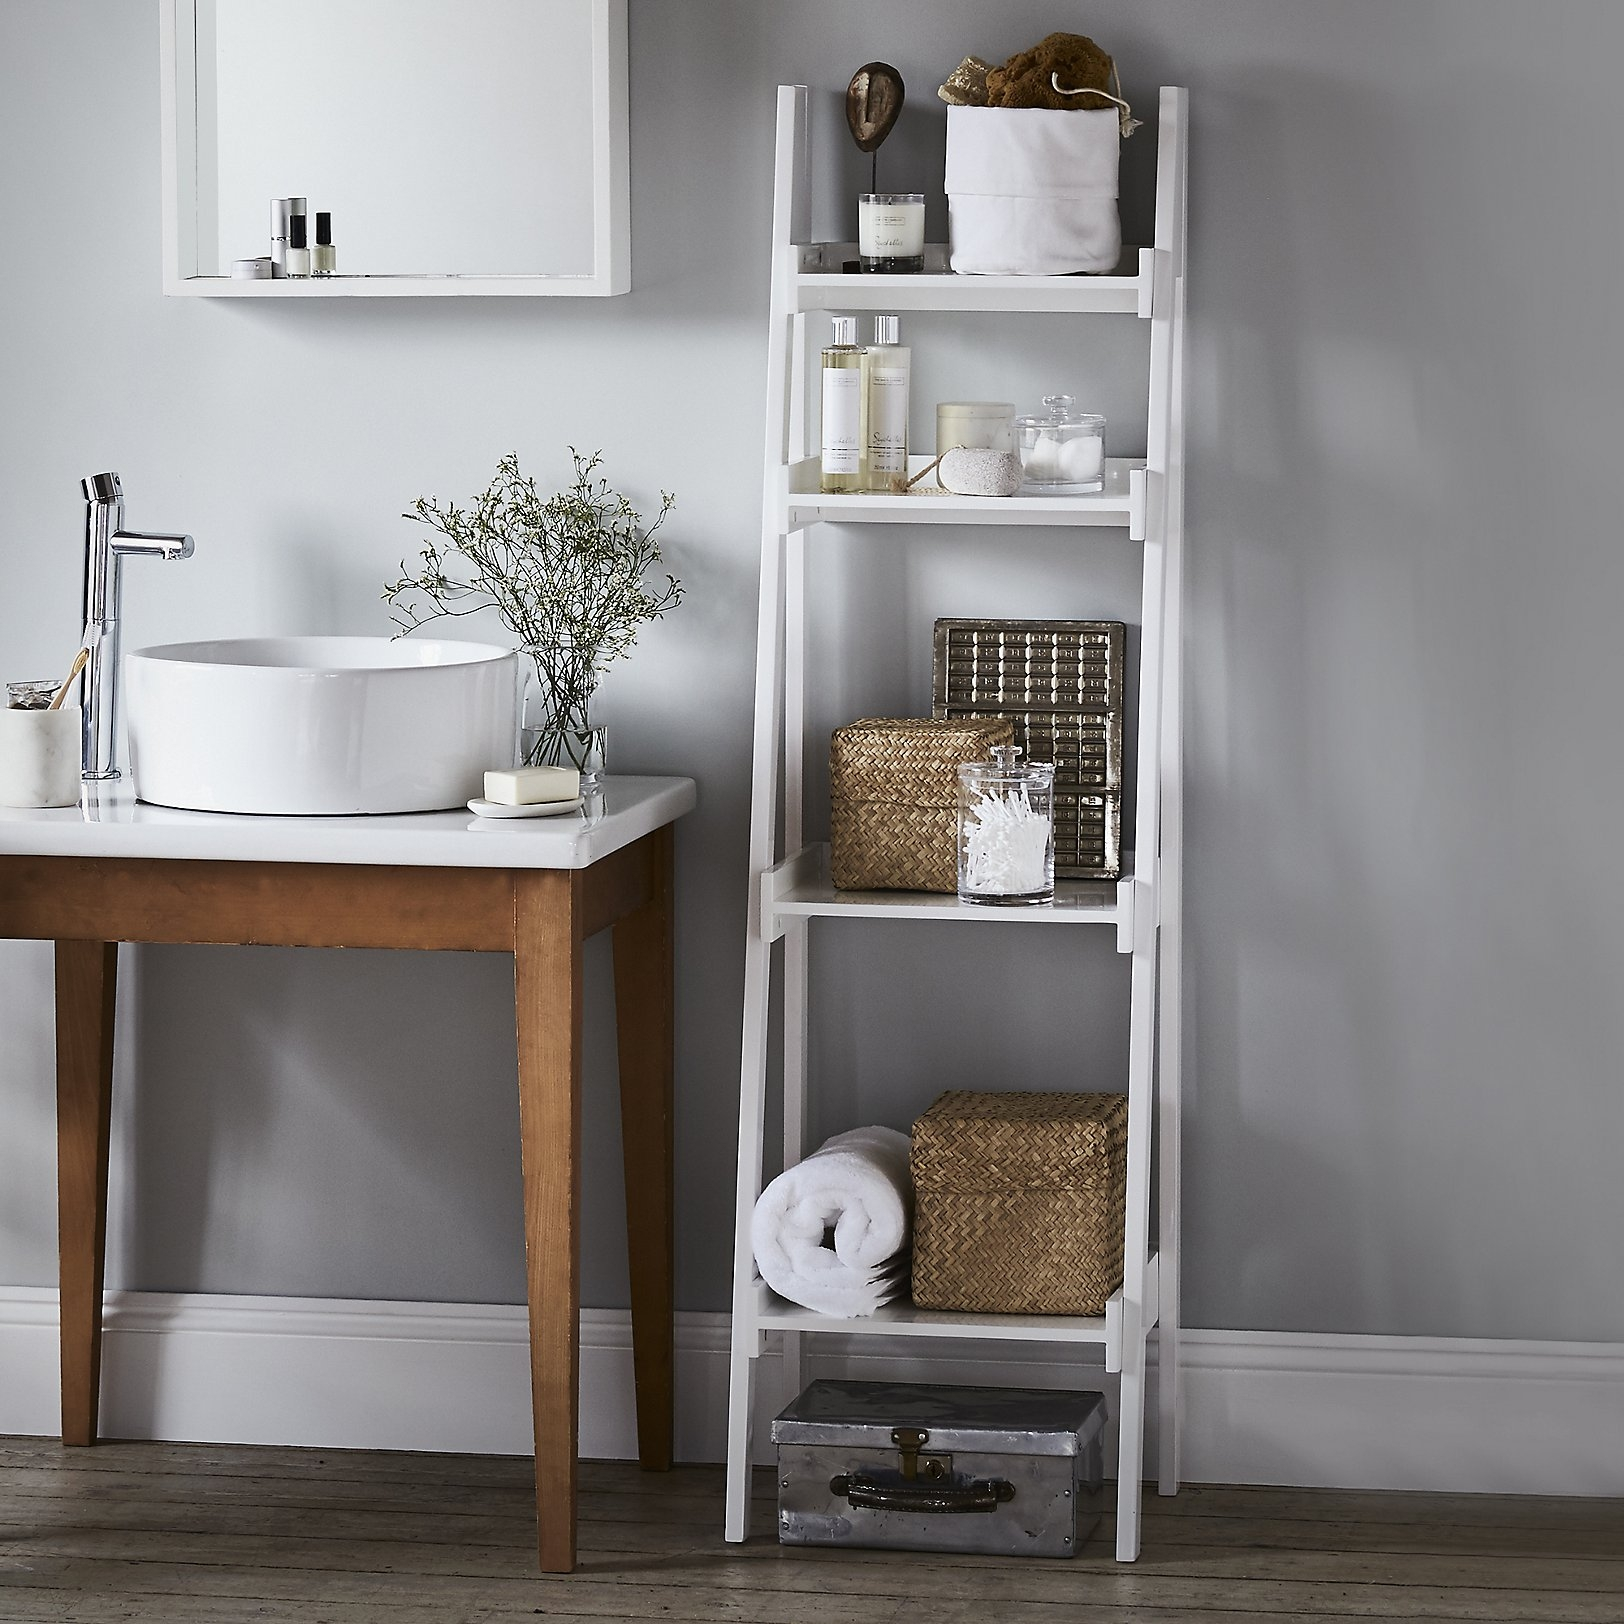 Bathroom Cabinet White Company1624 X 1624